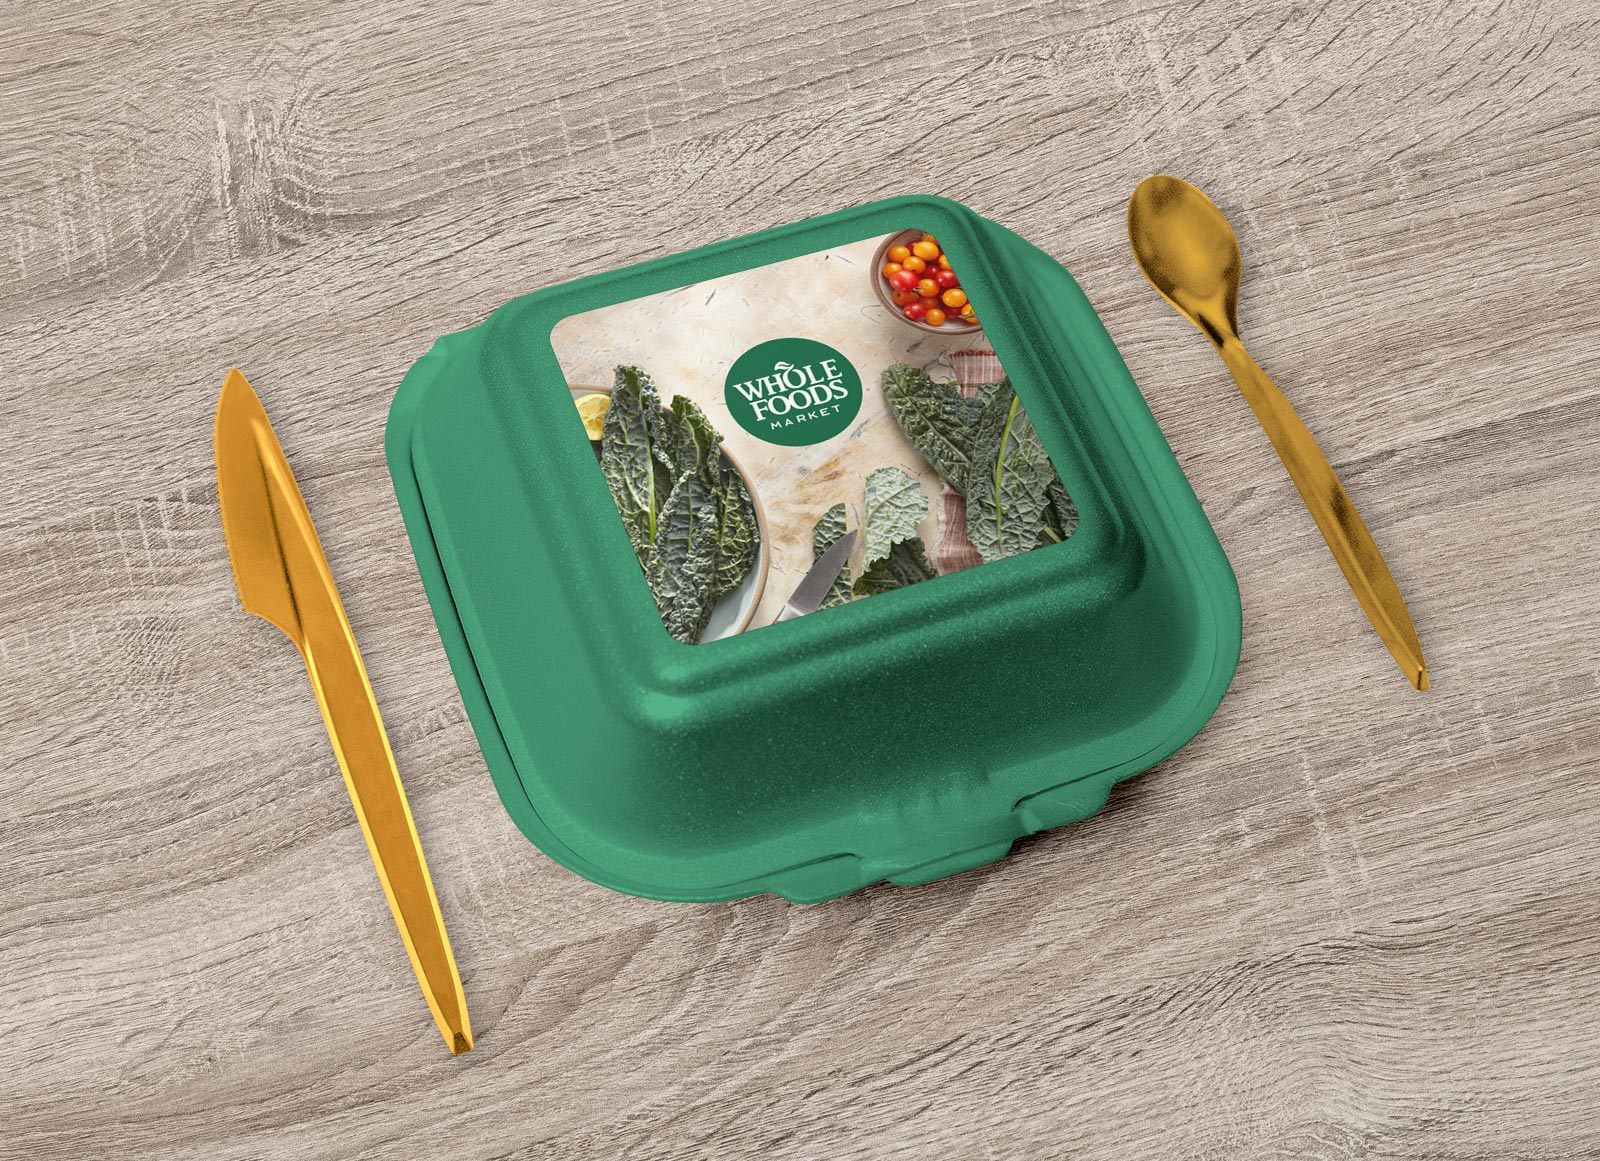 Free-Food-Container-Lid-Sticker-Mockup-PSD